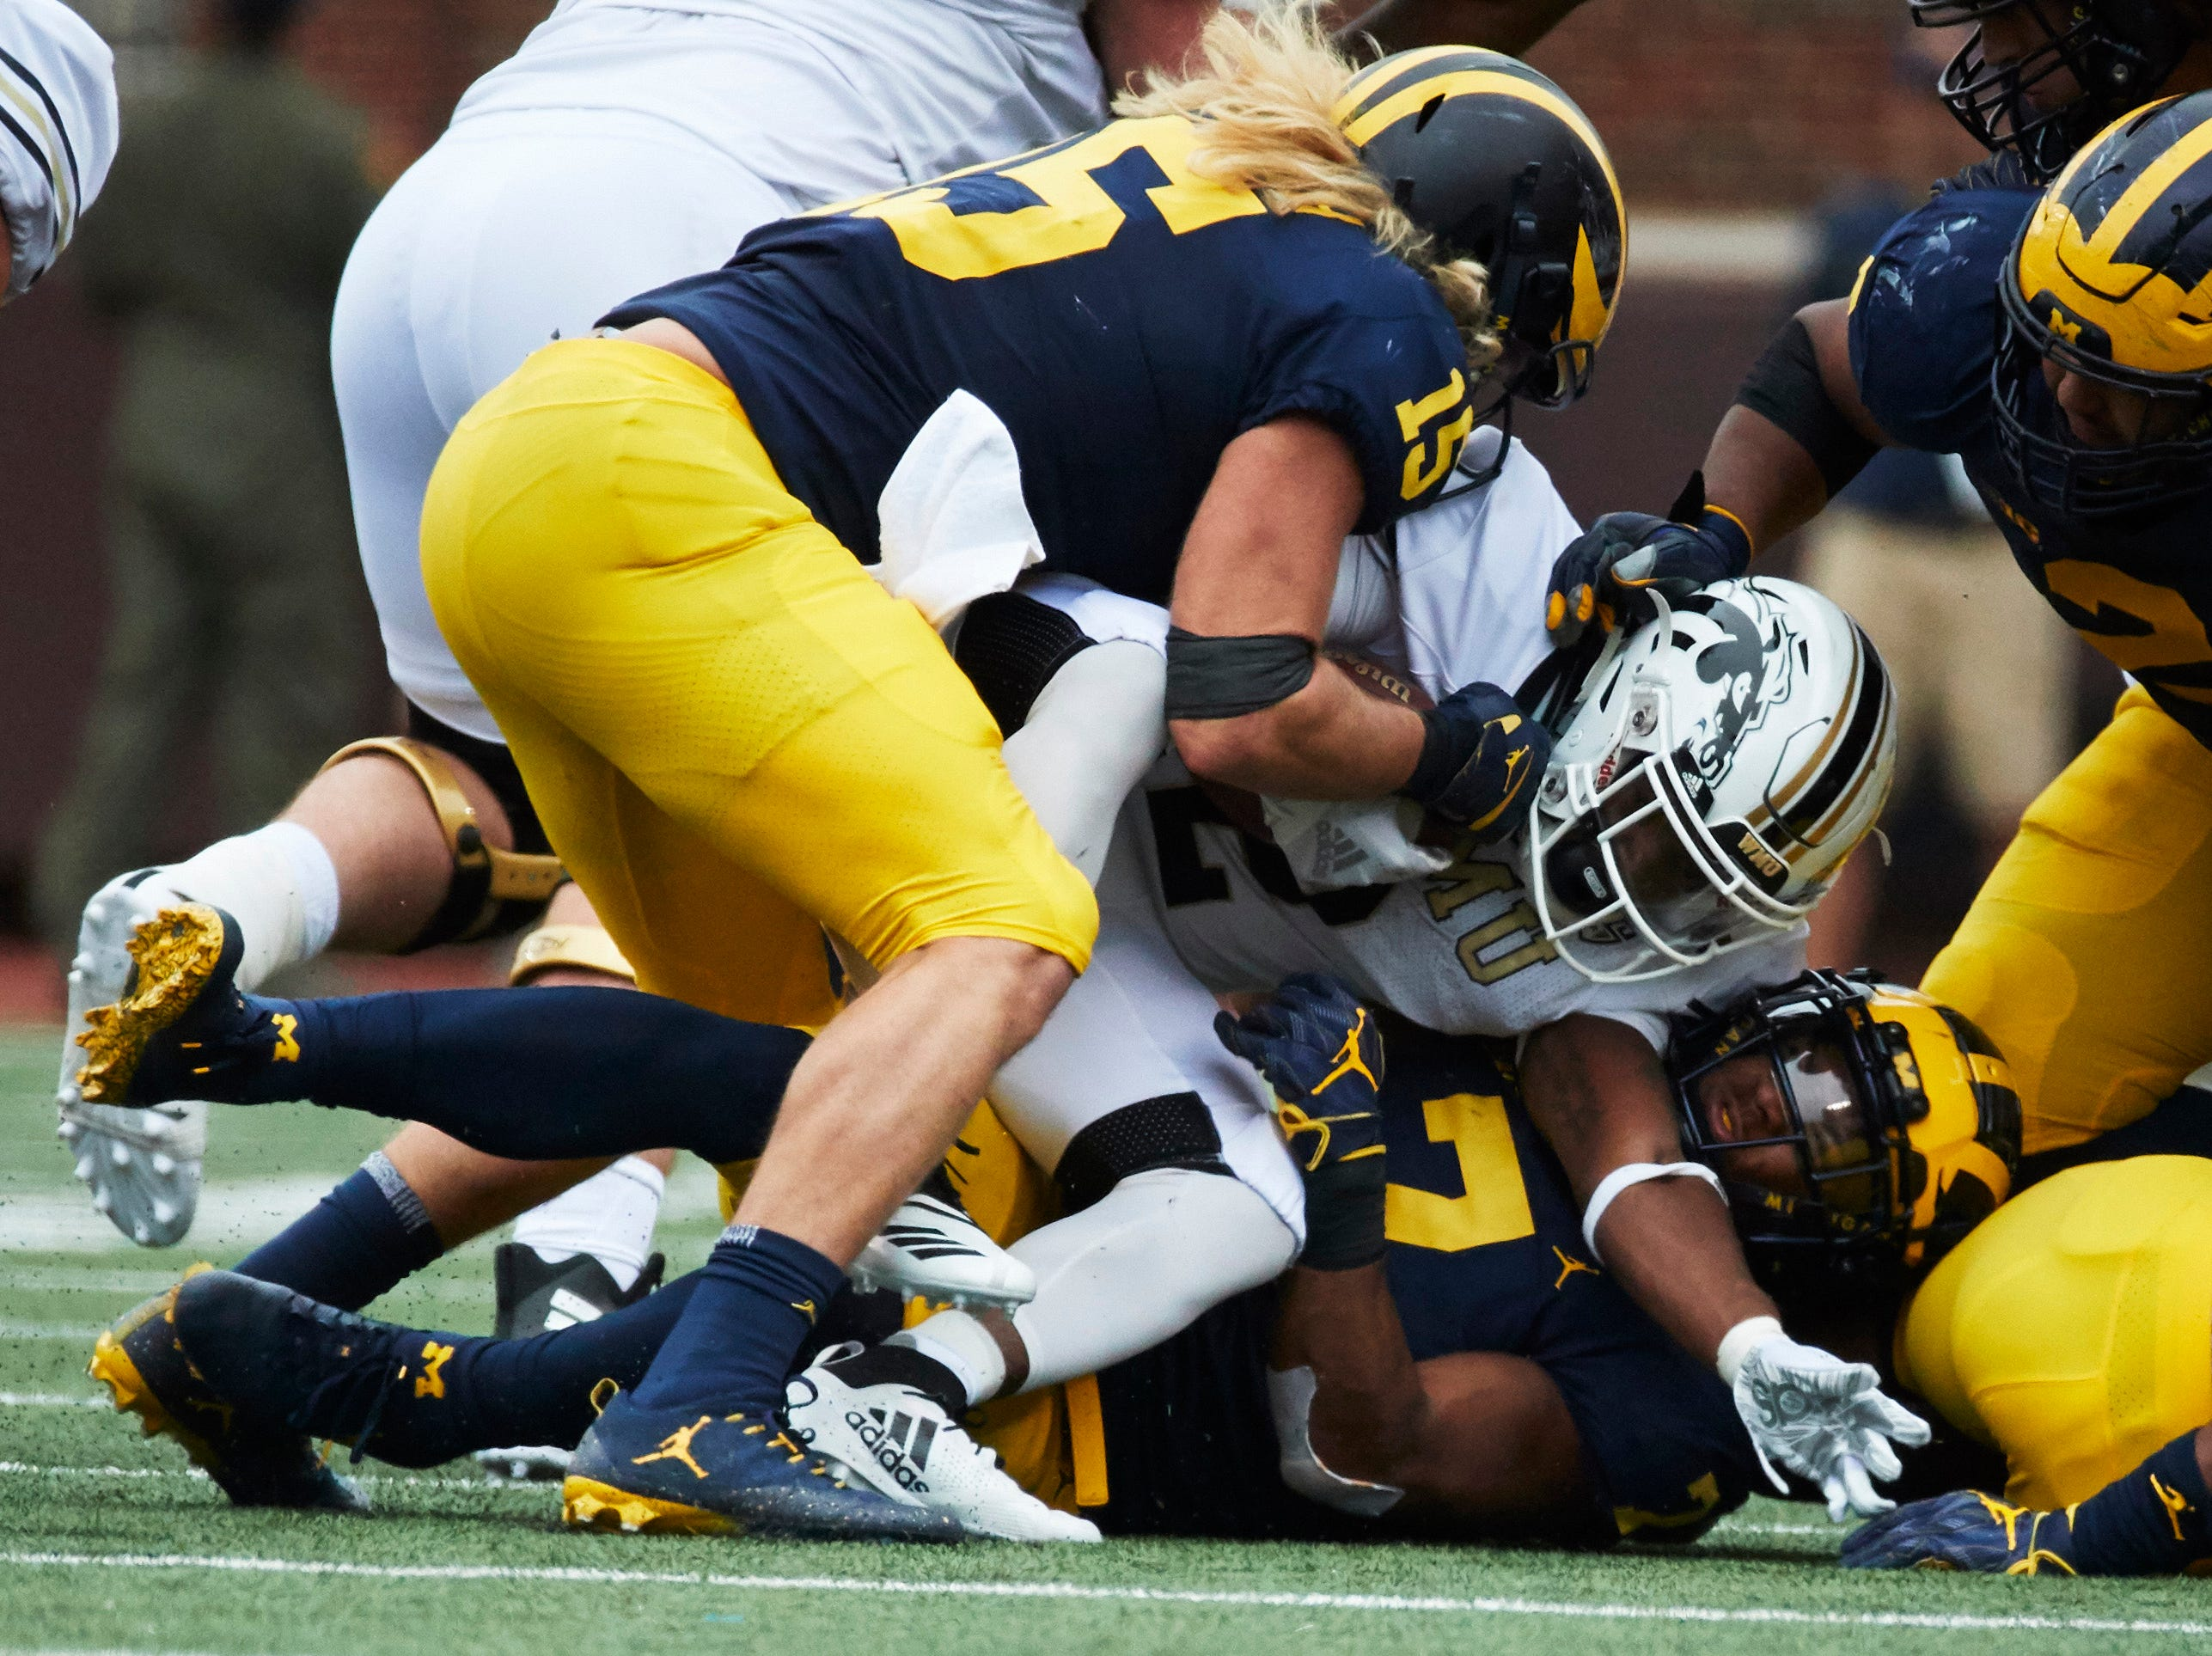 Sep 8, 2018; Ann Arbor, MI, USA; Western Michigan Broncos running back LeVante Bellamy (2) is tackled by Michigan Wolverines defensive lineman Chase Winovich (15) and linebacker Khaleke Hudson (7) in the first half at Michigan Stadium. Mandatory Credit: Rick Osentoski-USA TODAY Sports